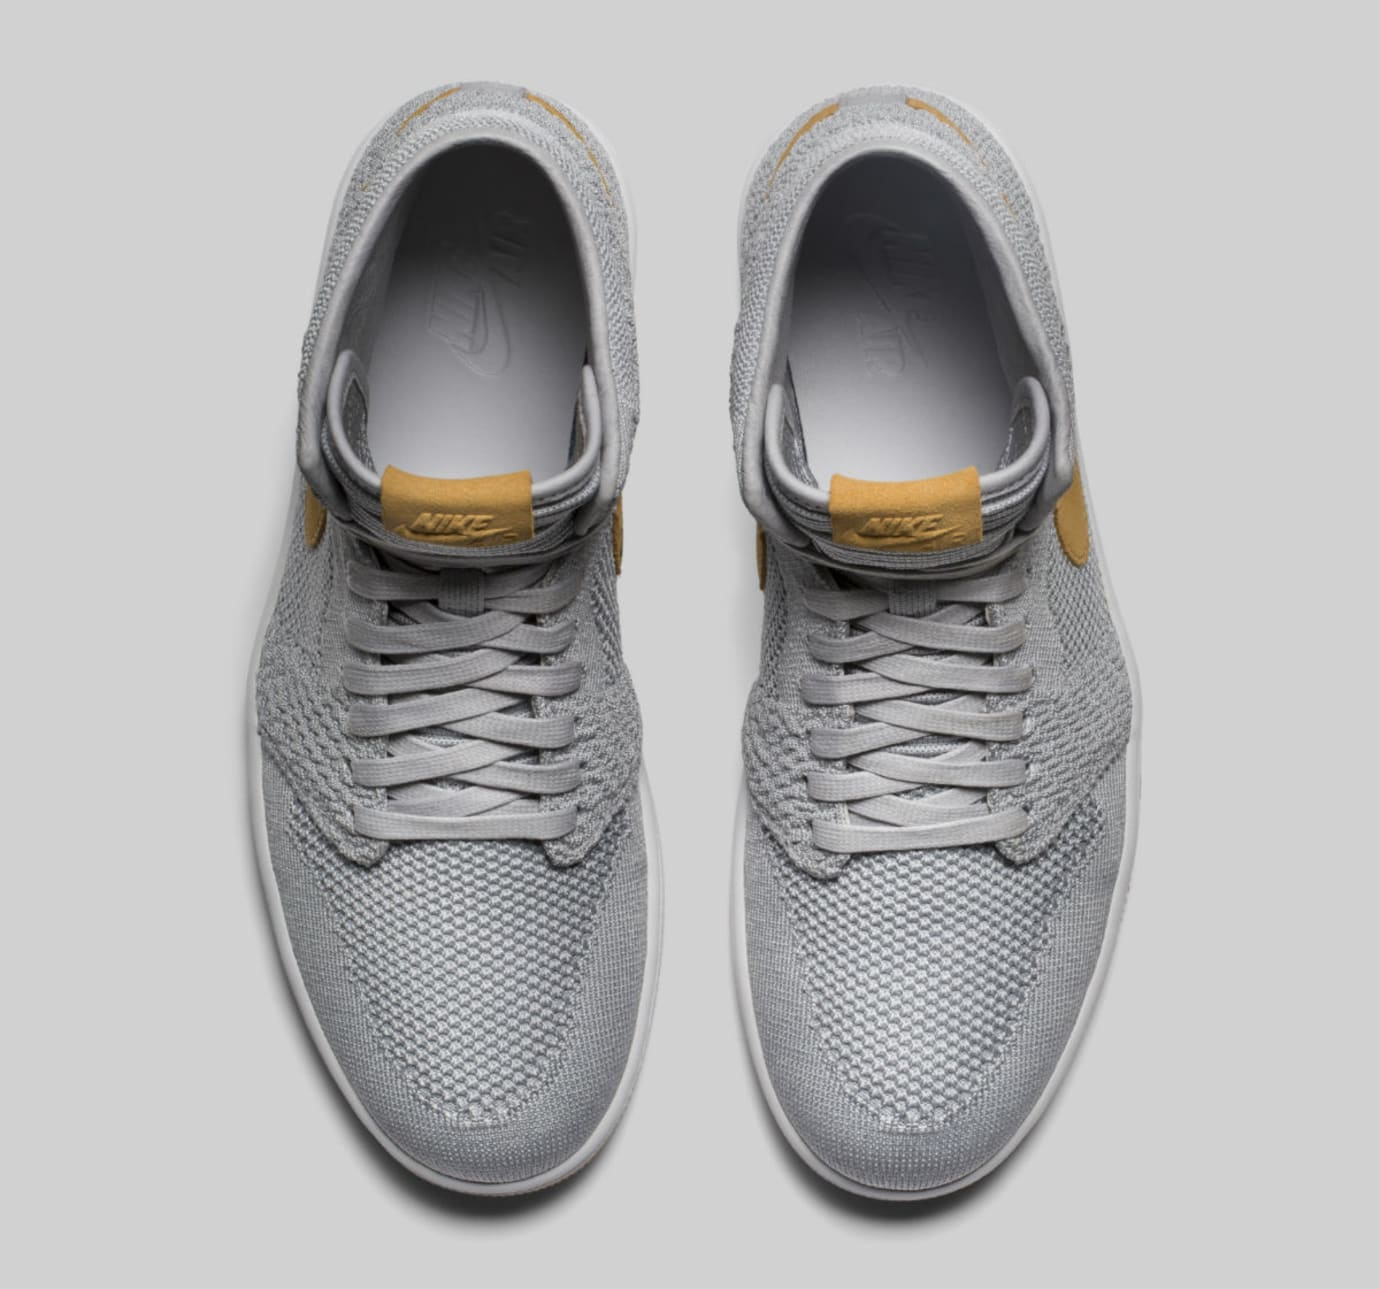 Air Jordan 1 Flyknit Wolf Grey Release Date Top 919704-025